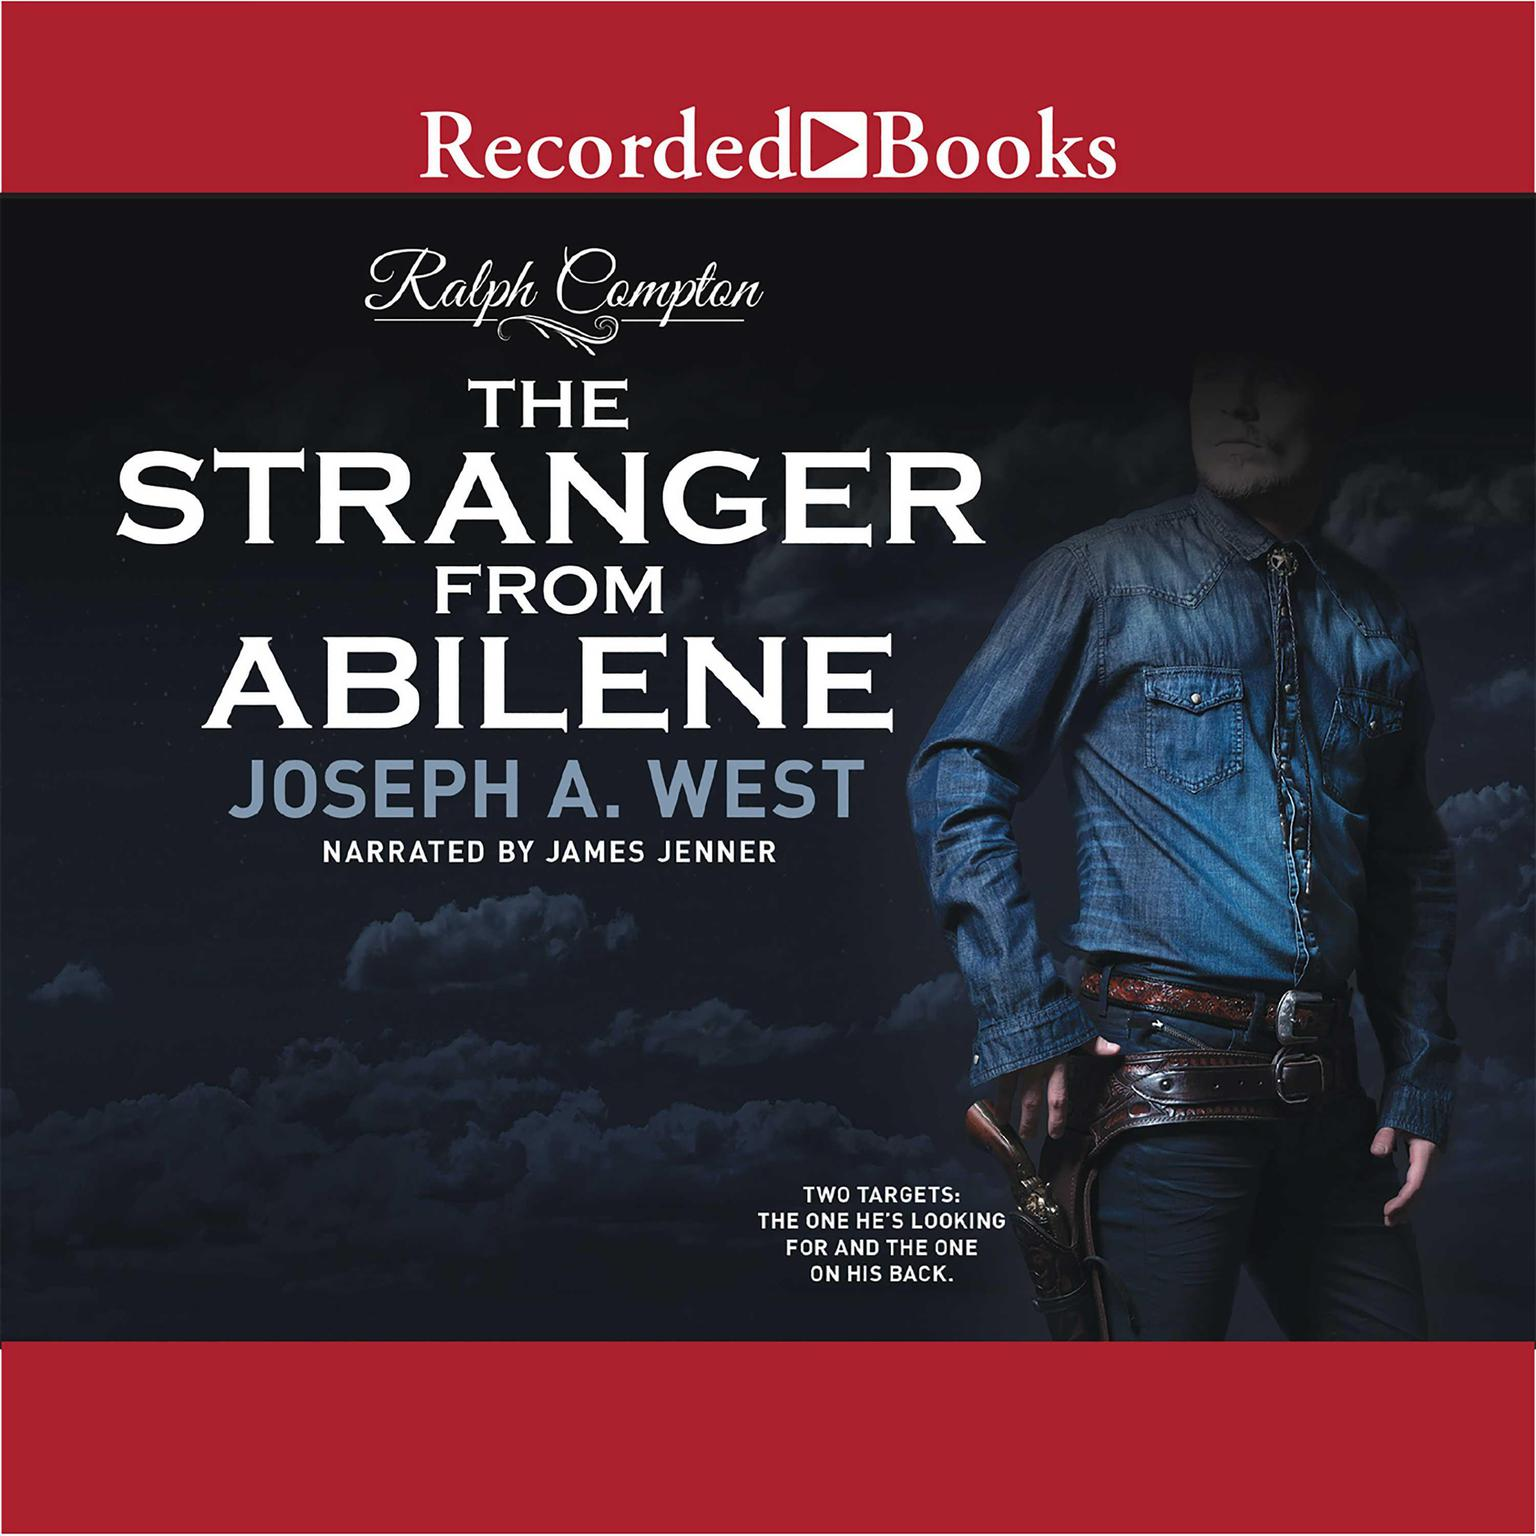 Printable Ralph Compton: The Stranger From Abilene Audiobook Cover Art